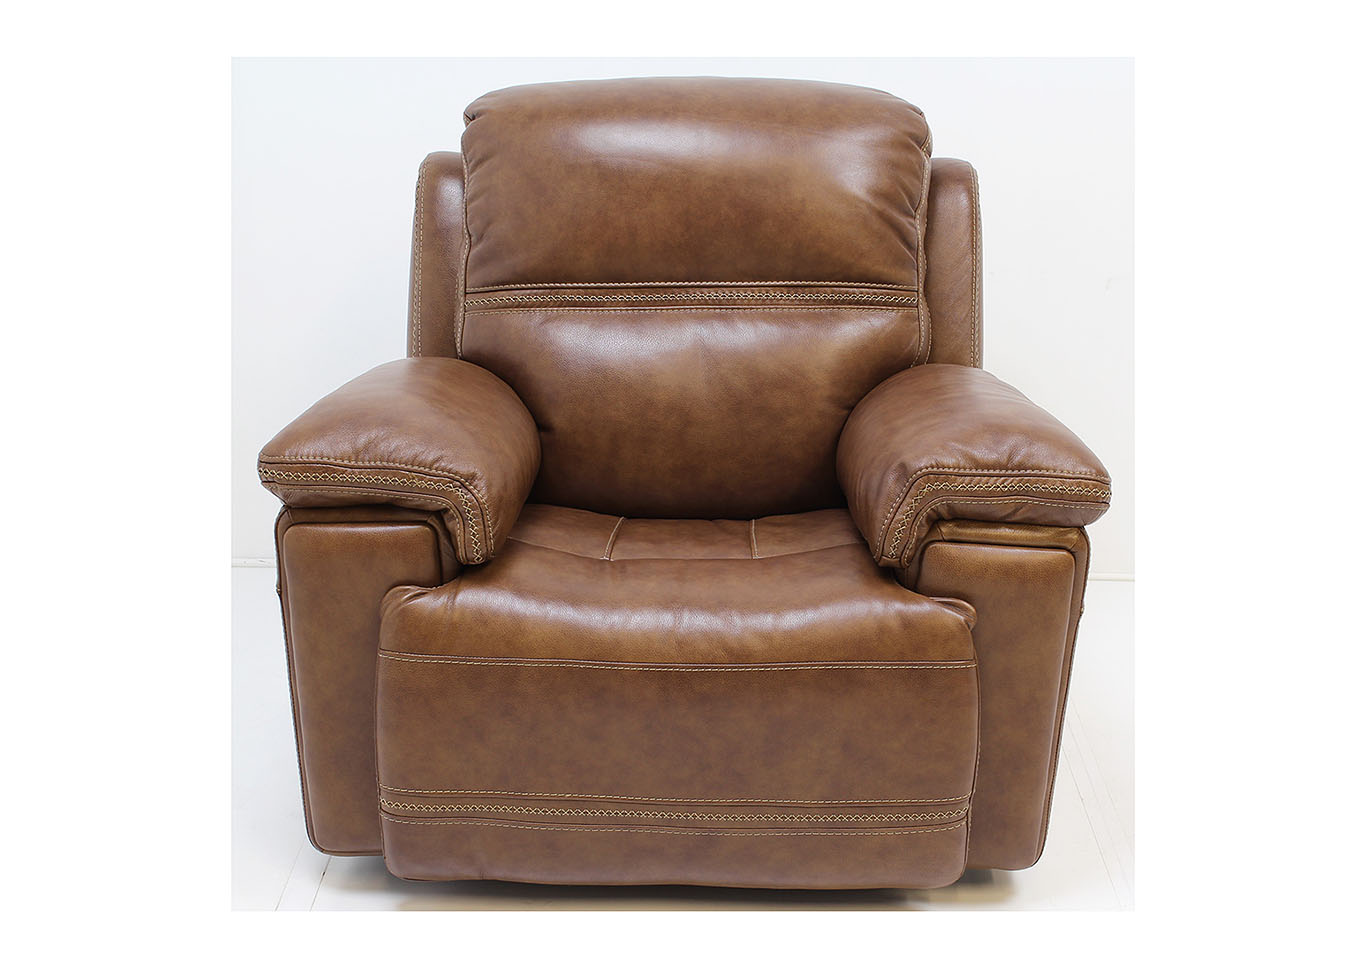 Fenwick Leather Power Glider Recliner by Flexsteel,Old Brick